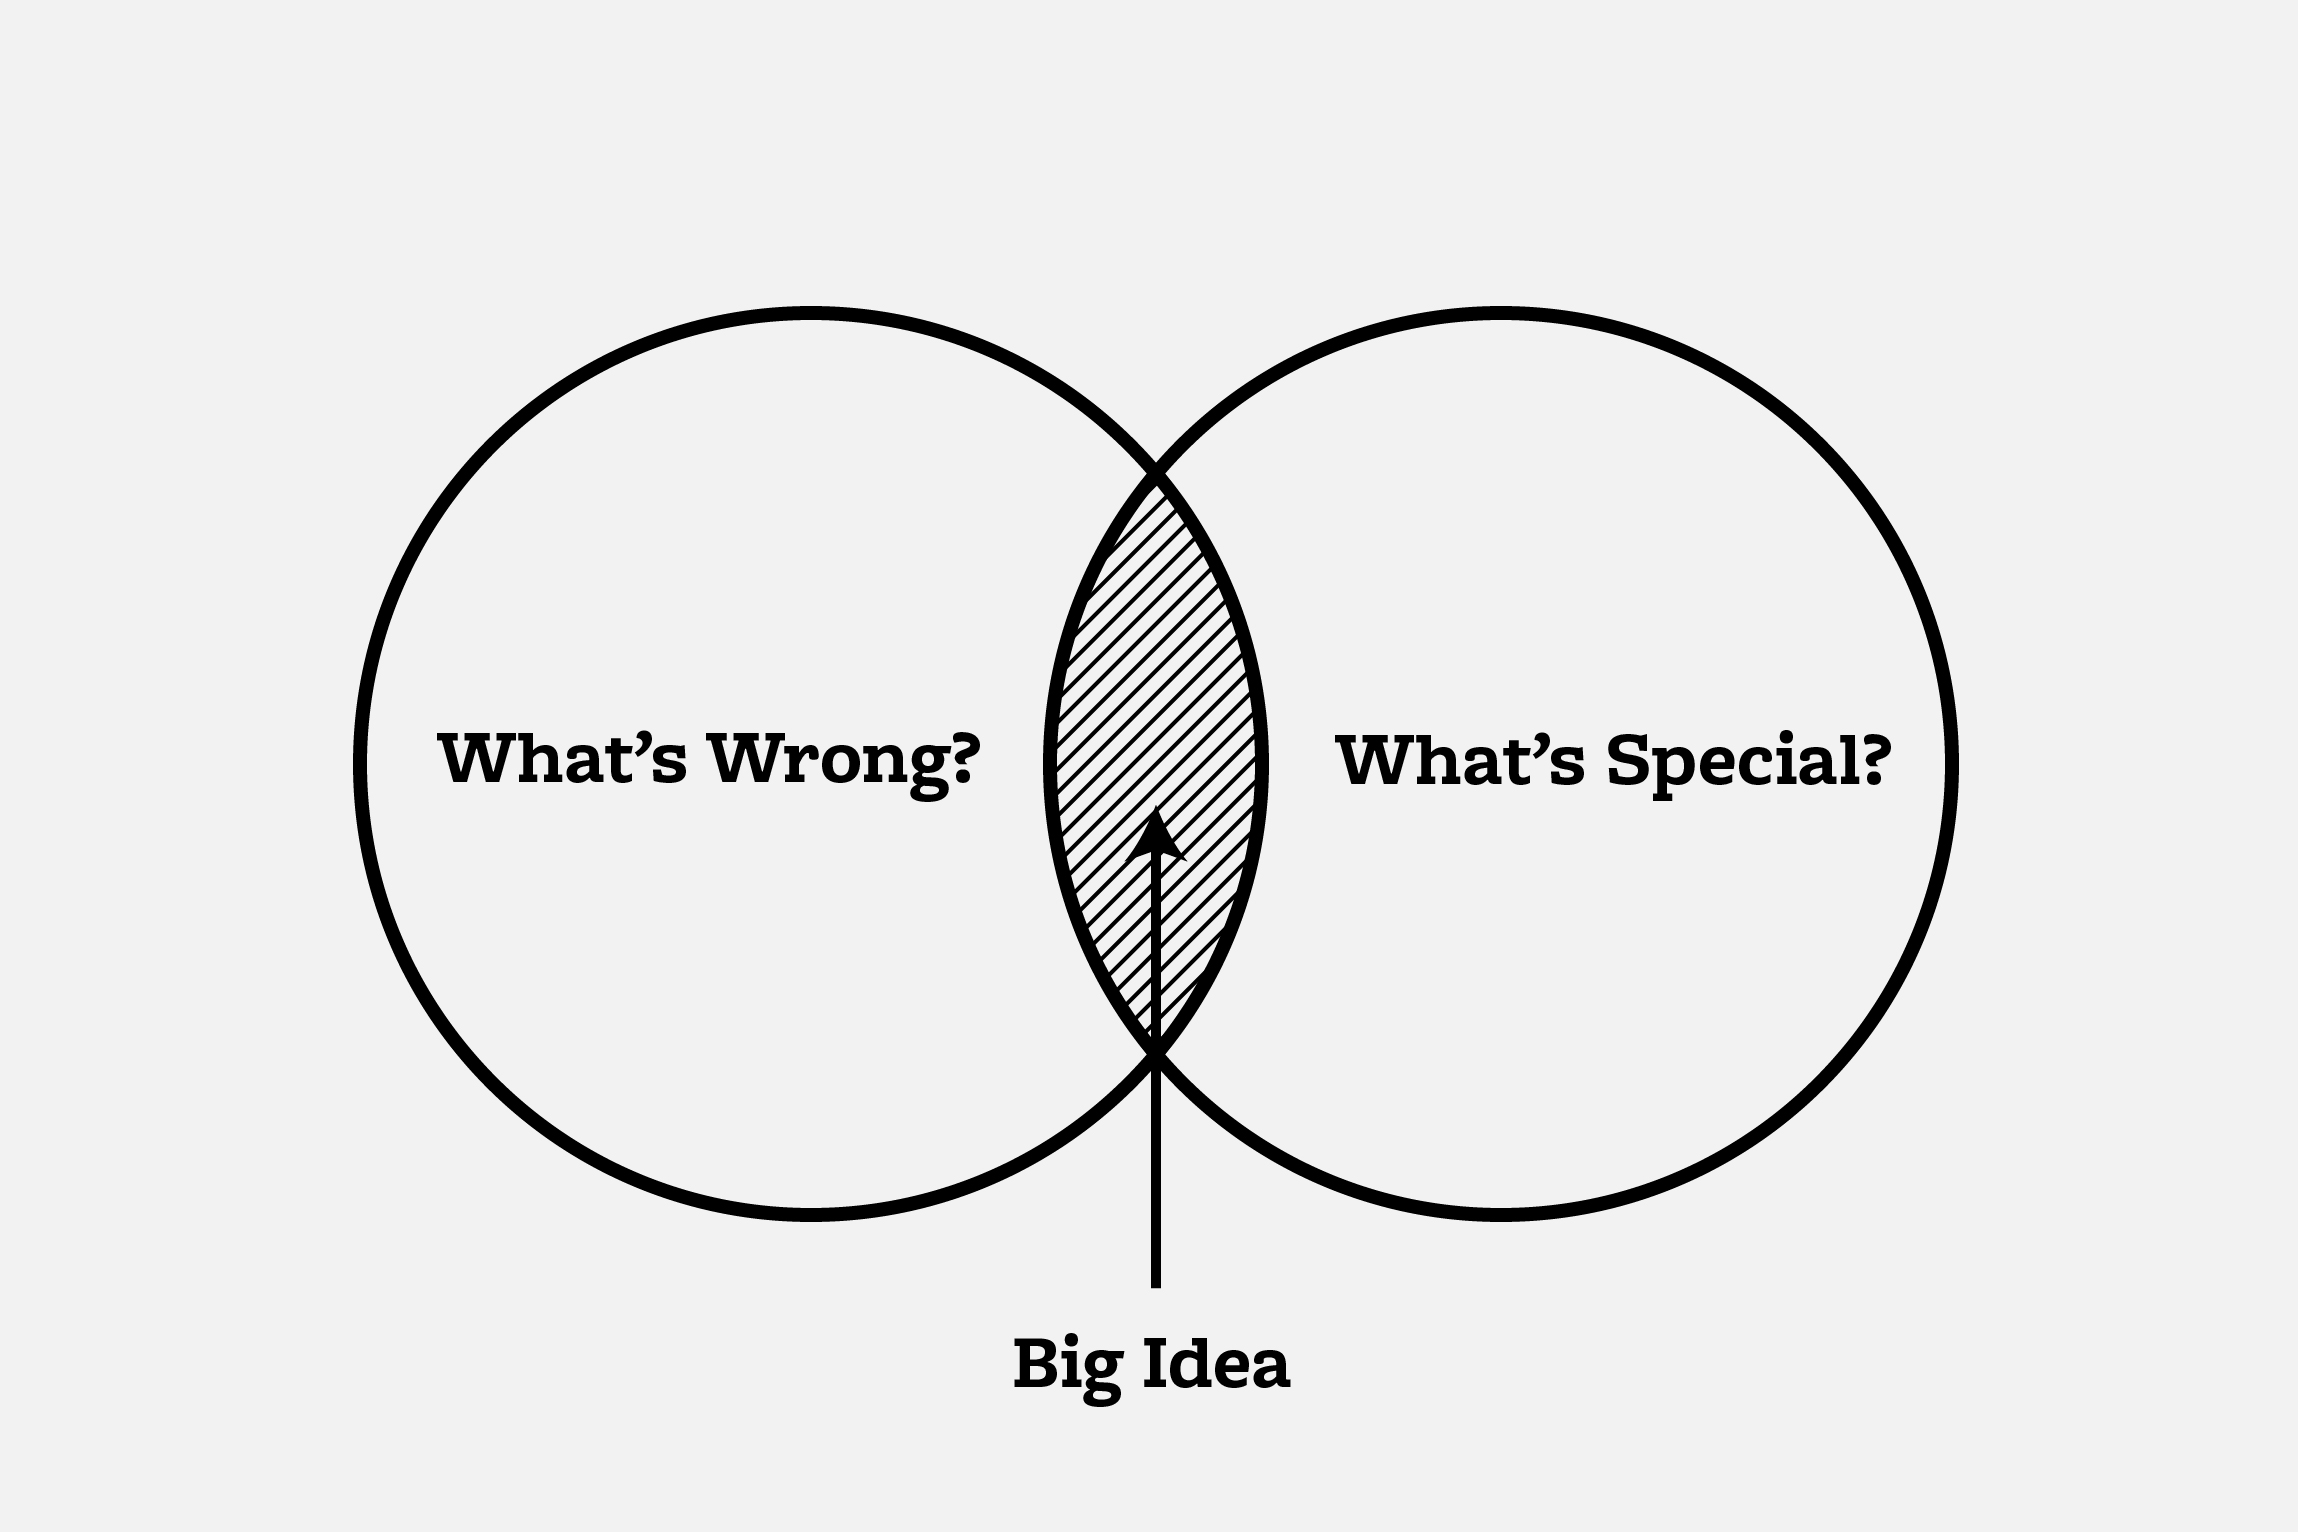 It's in the overlap of the butterfly diagram that the Big Idea reveals itself.